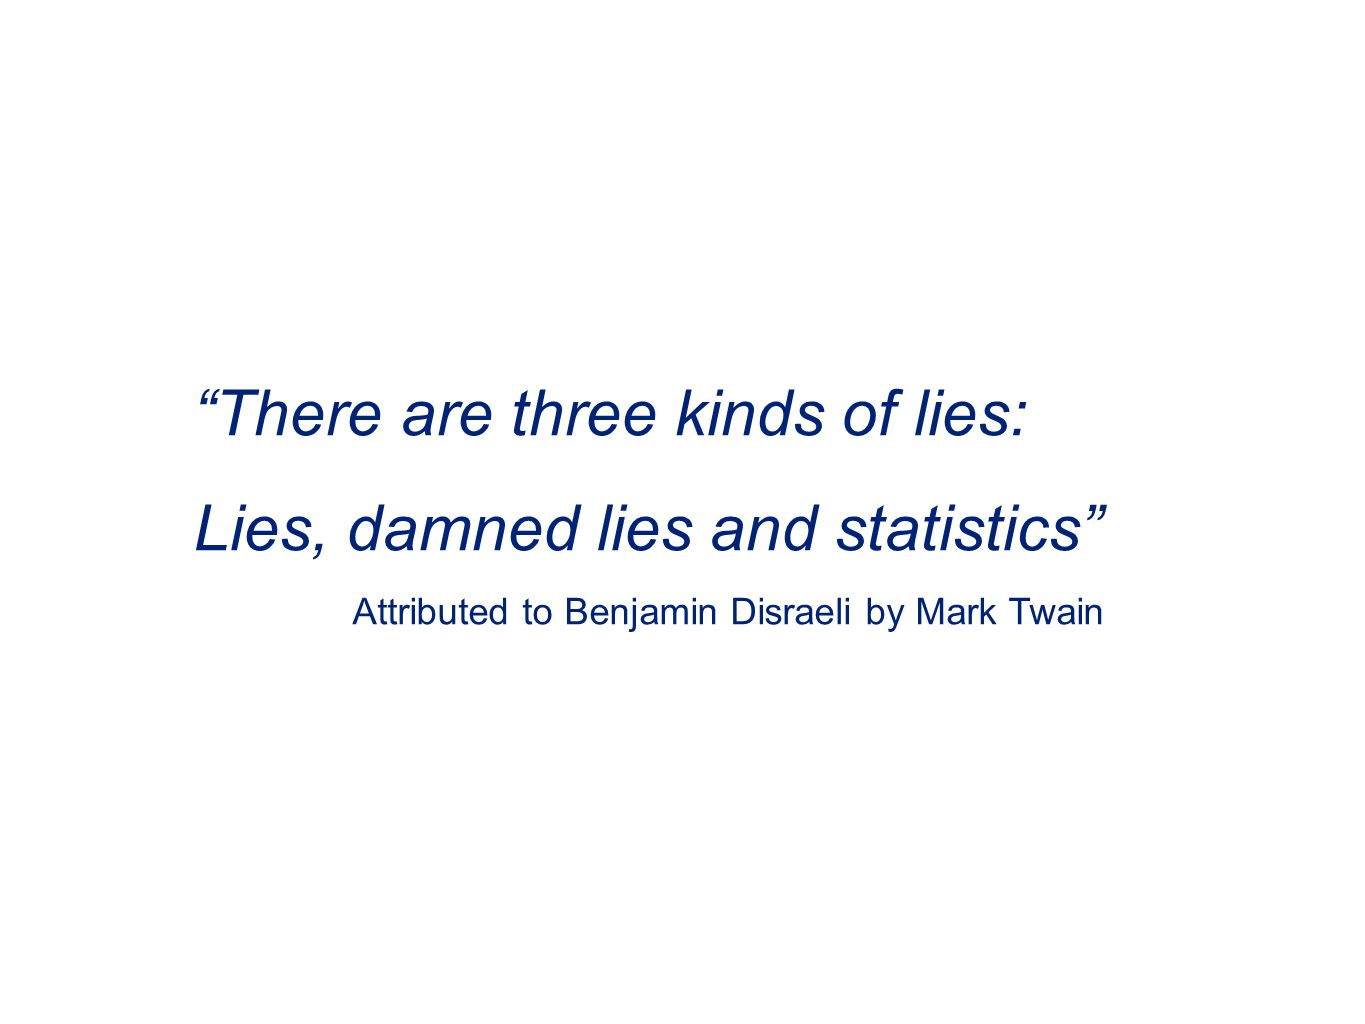 There are three kinds of lies: Lies, damned lies and statistics Attributed to Benjamin Disraeli by Mark Twain